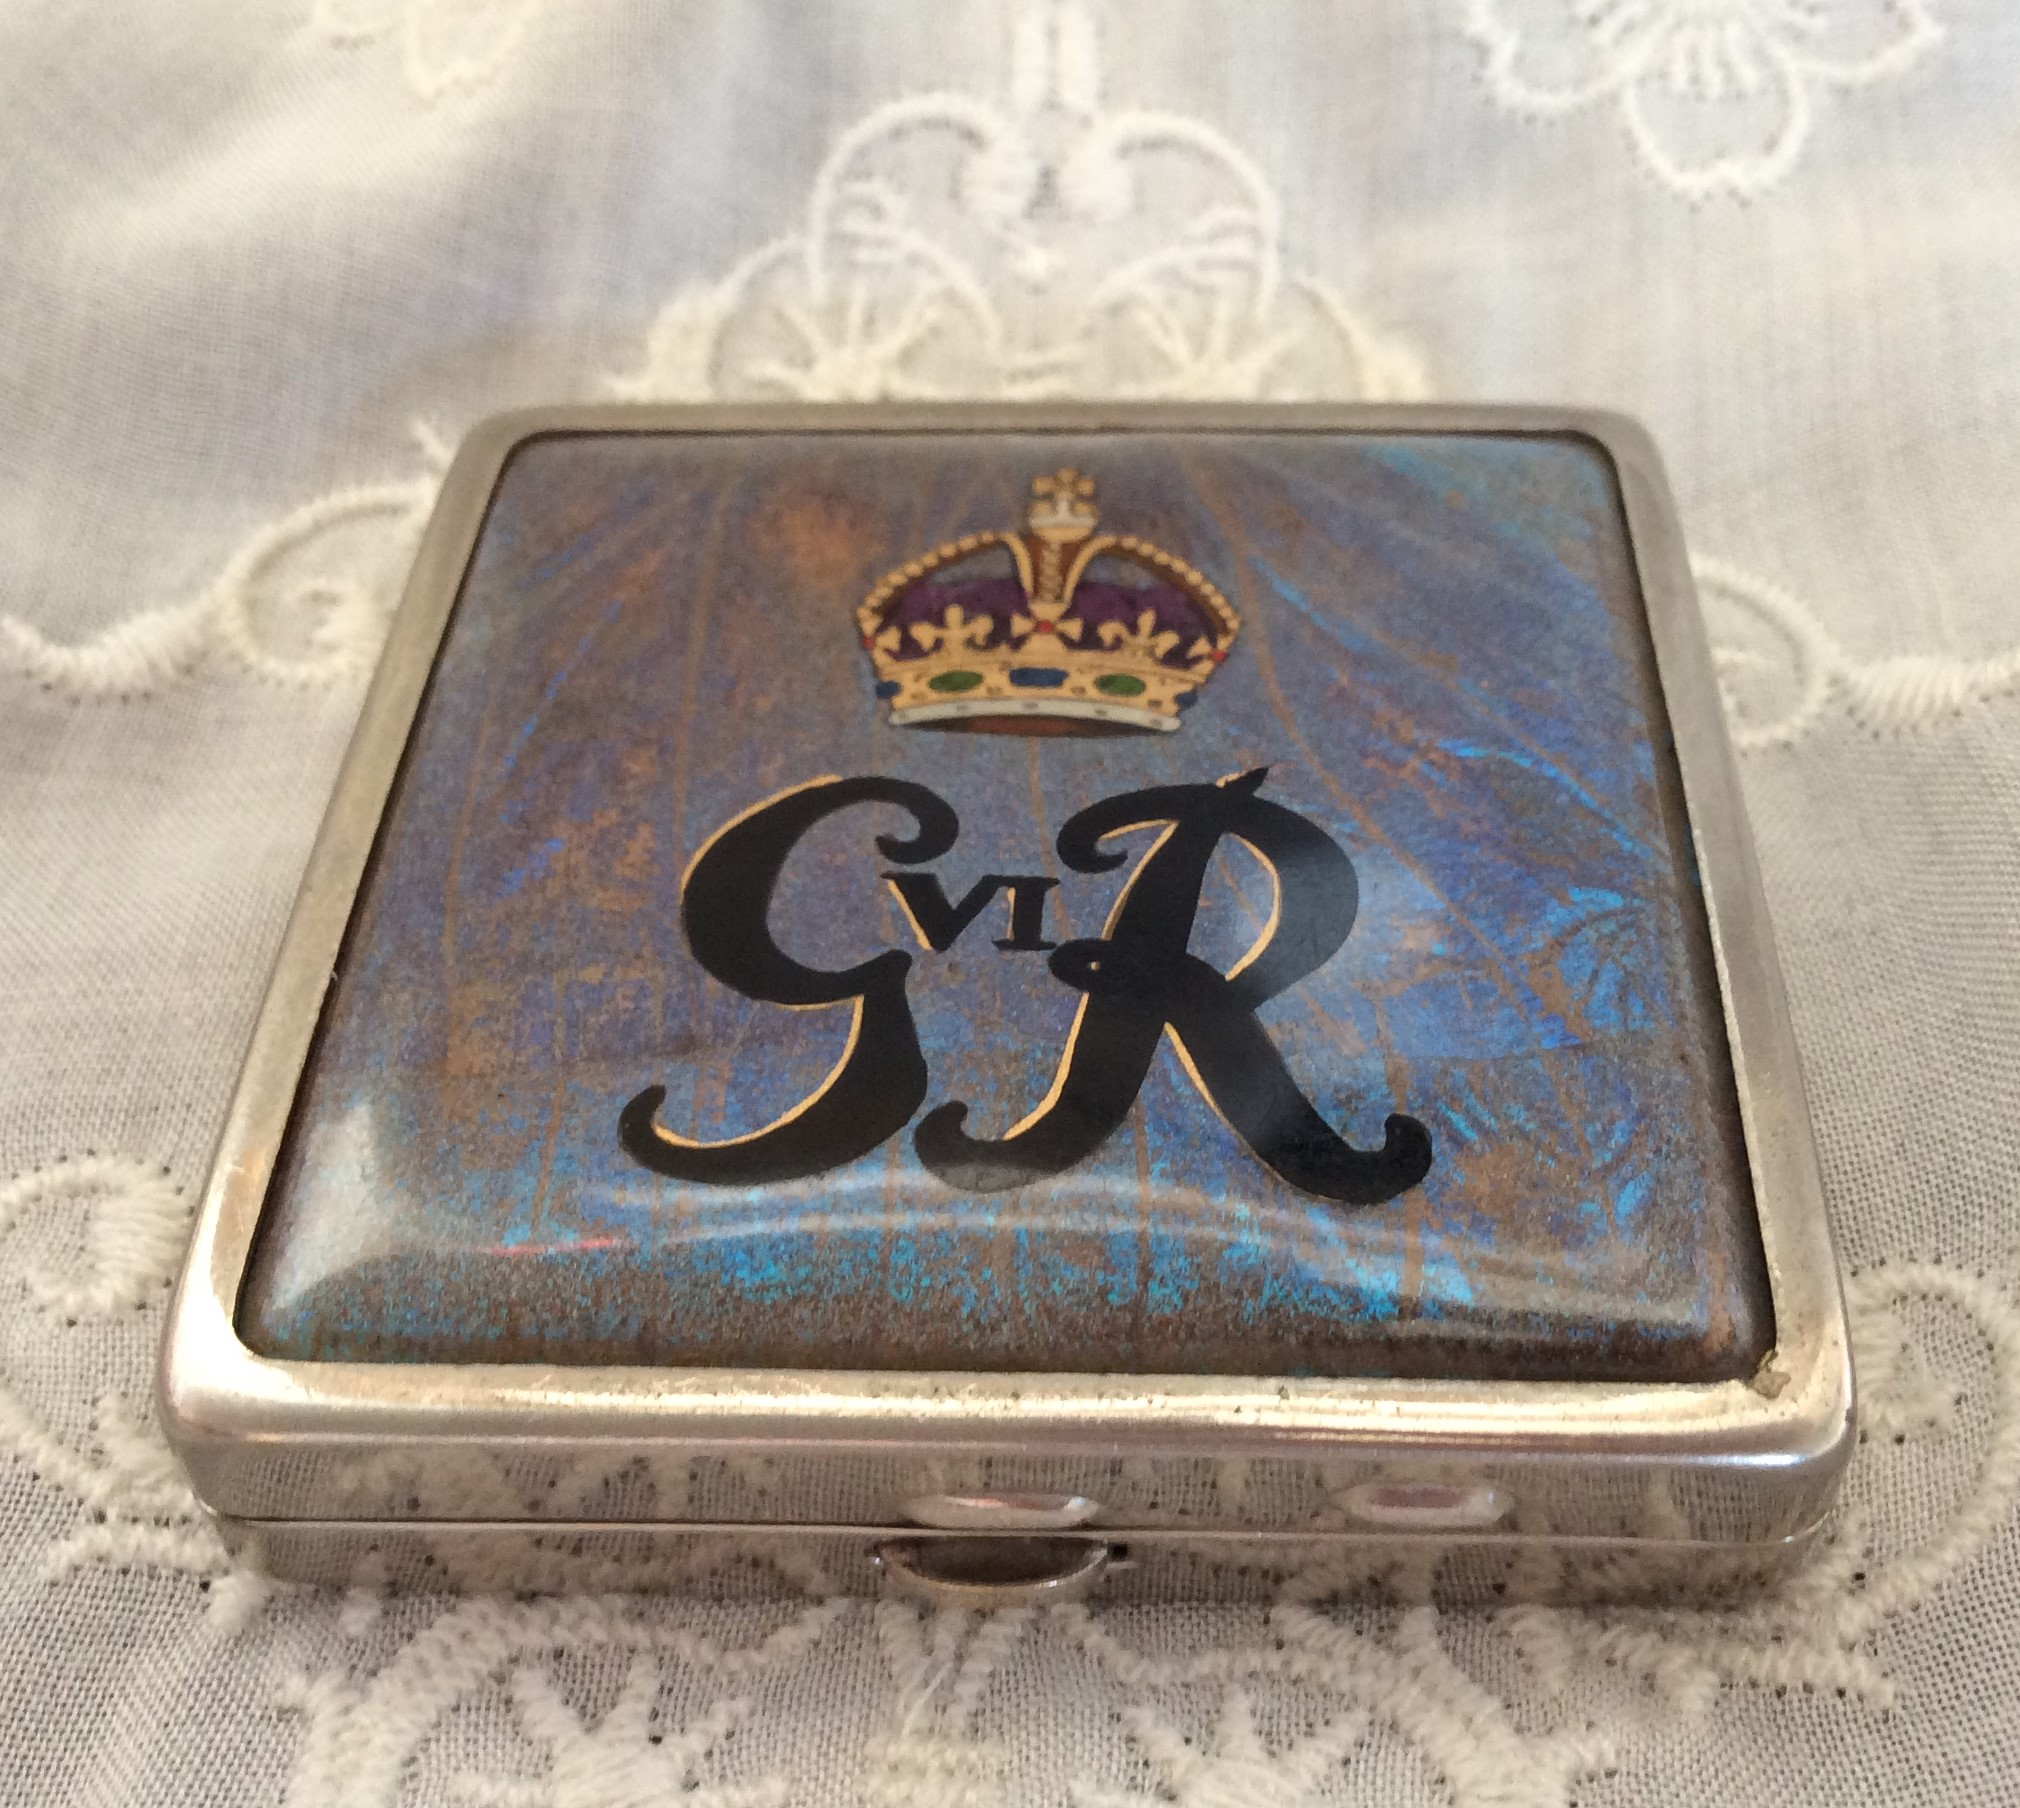 Rare Vintage 1937 King George V1 Souvenir Coronation Butterfly Wing Square Powder Compact Made in England